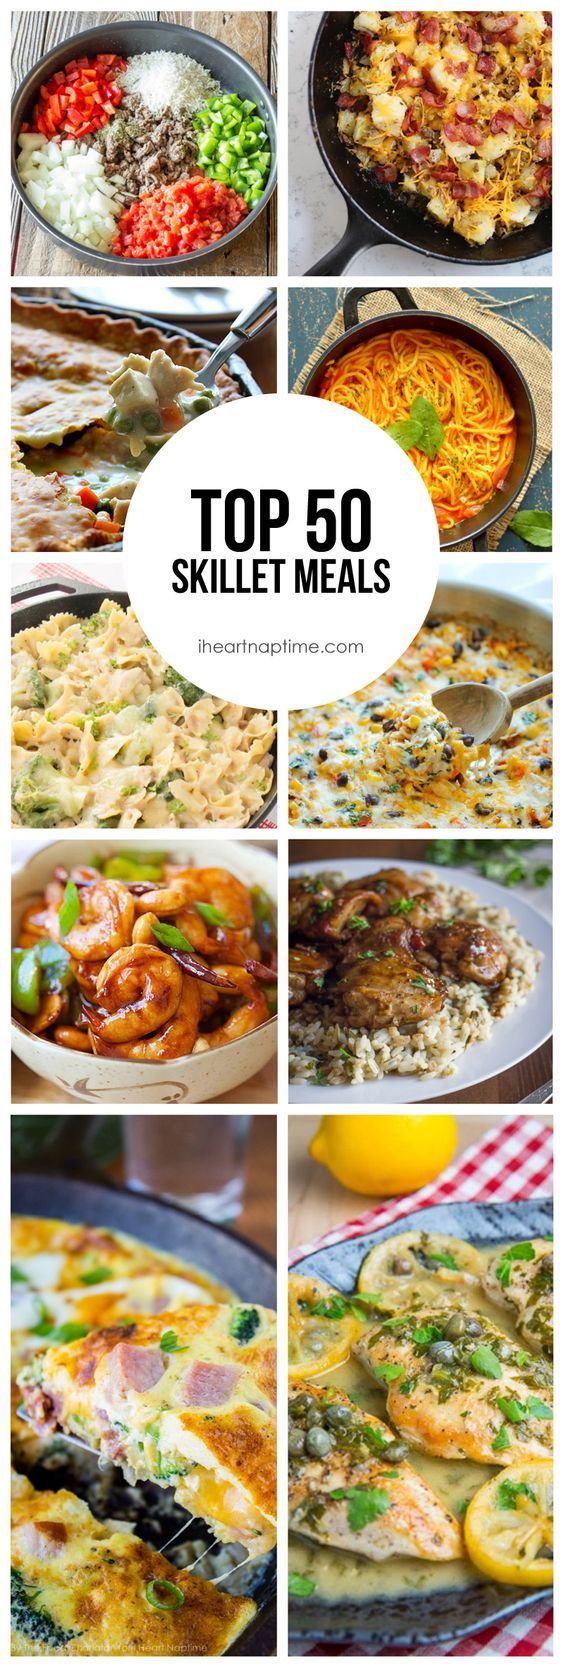 Top 50 Skillet Meals onTop 50 Skillet Meals oniheartnaptime-recipes that can be all in one pot!